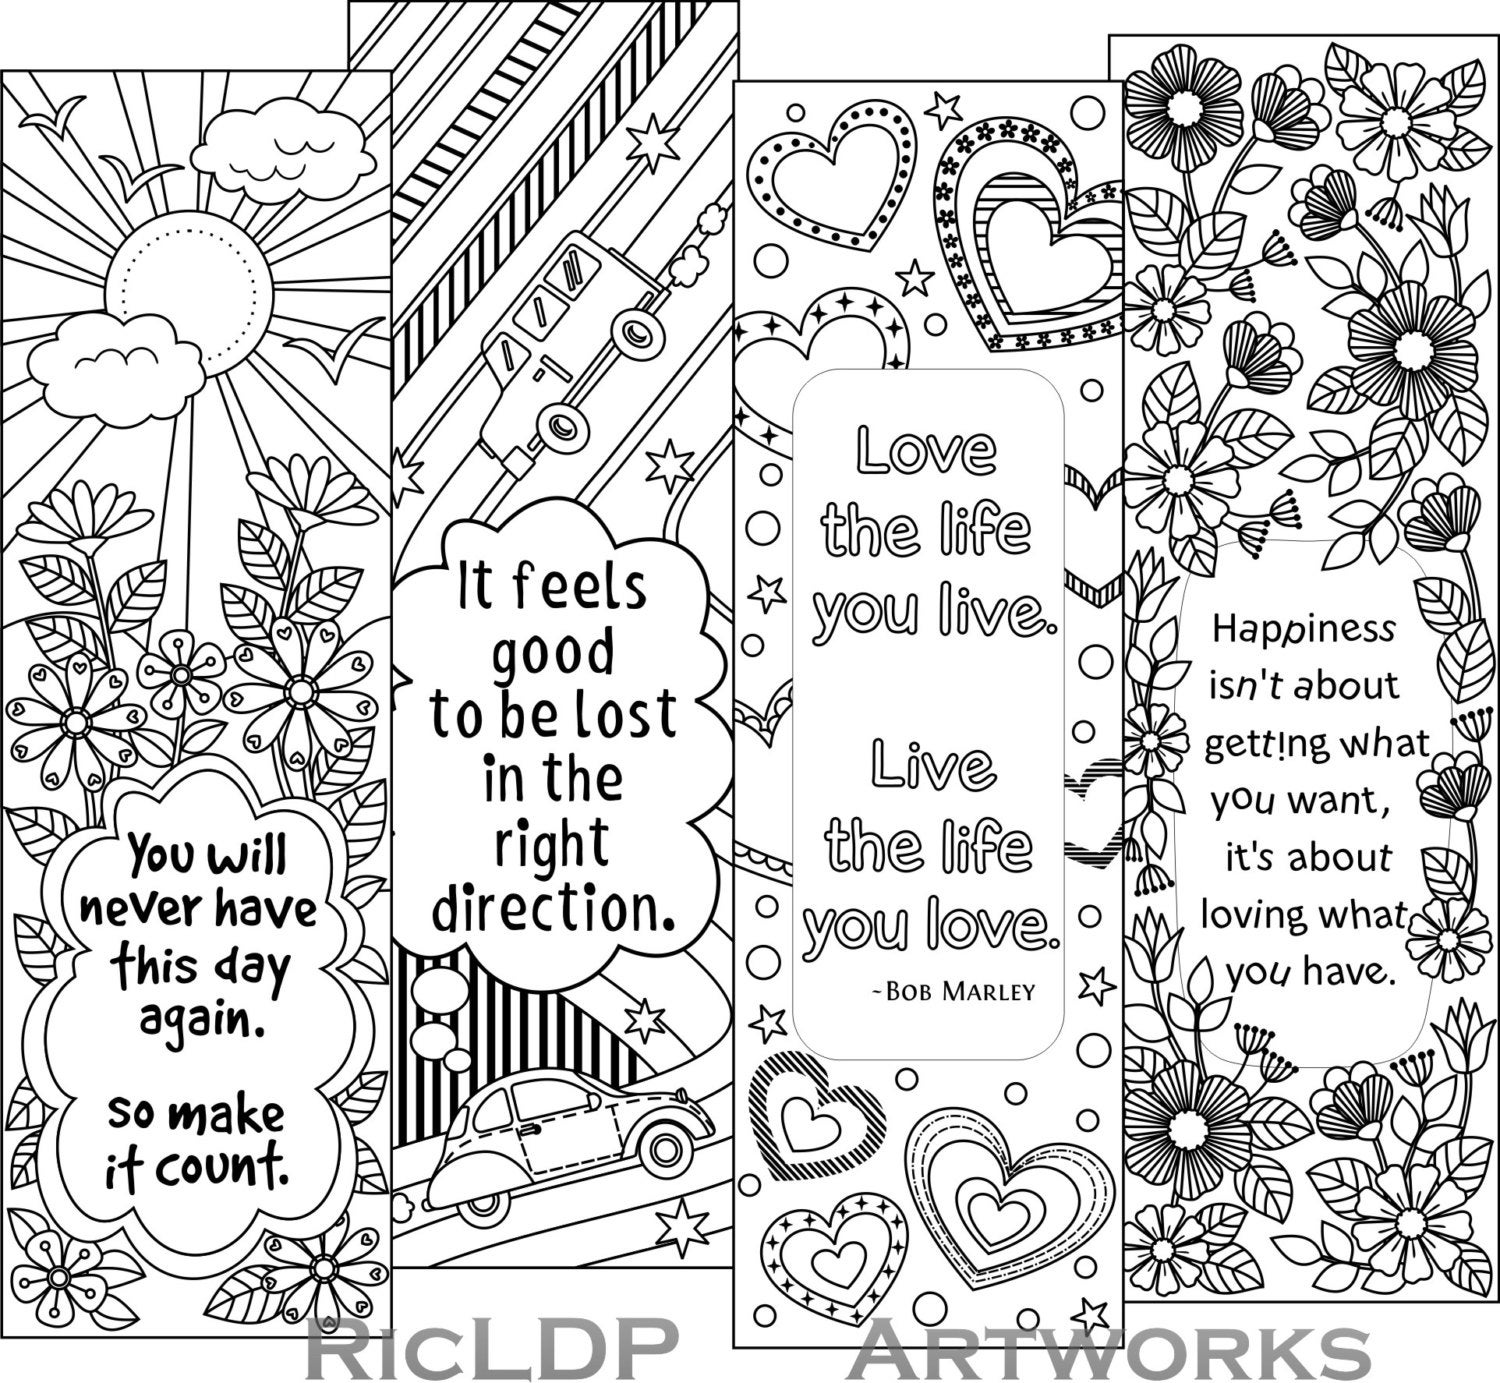 coloring bible verse bookmark printable colouring bookmarks with quotes coloring bookmark bookmark coloring bible verse